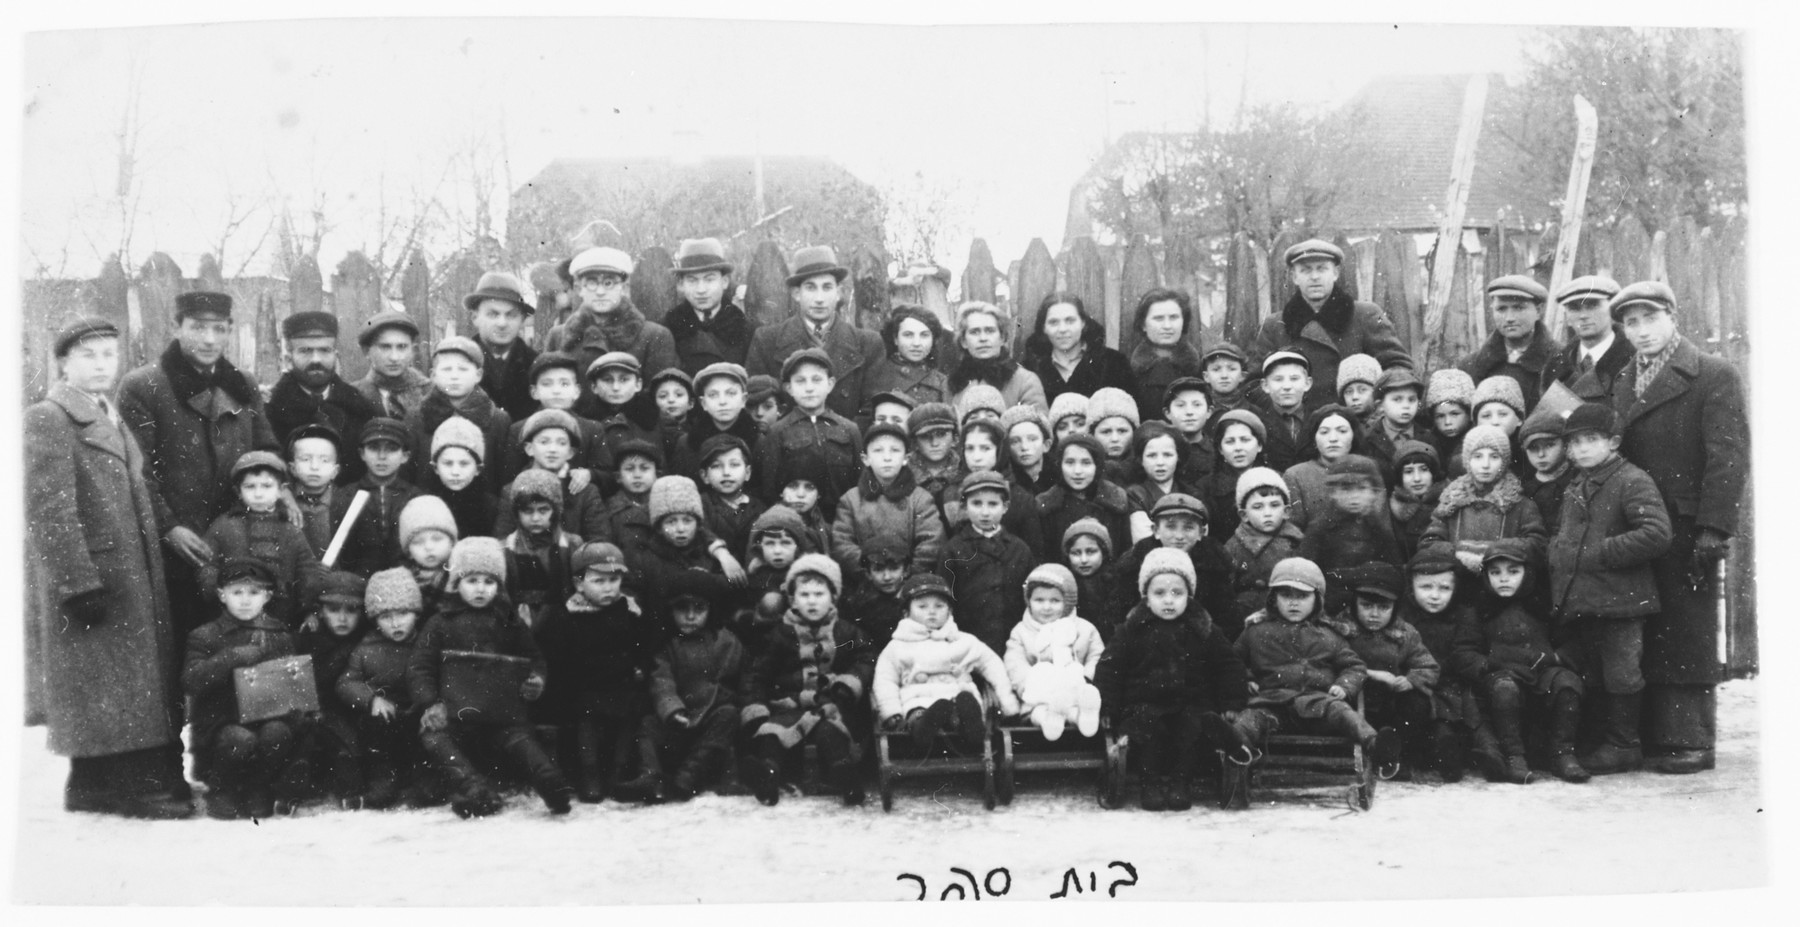 Students and teachers in the Hebrew school in Grabowiec pose for a group photo outside in the snow.  Lila Rajs is pictured in the front row, sixth from the right.